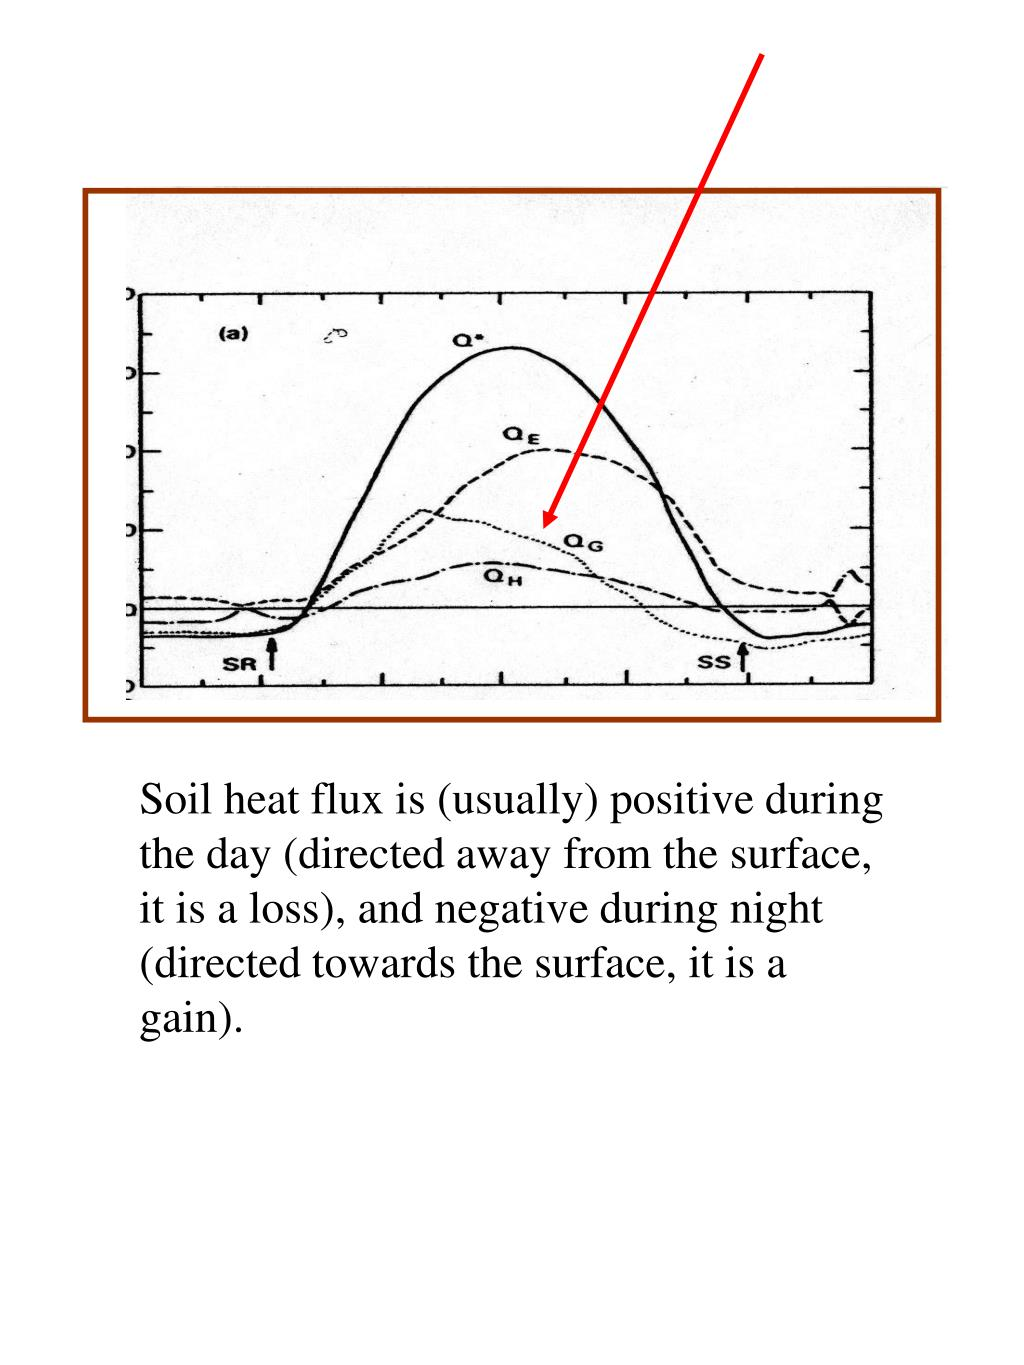 Soil heat flux is (usually) positive during the day (directed away from the surface, it is a loss), and negative during night (directed towards the surface, it is a gain).